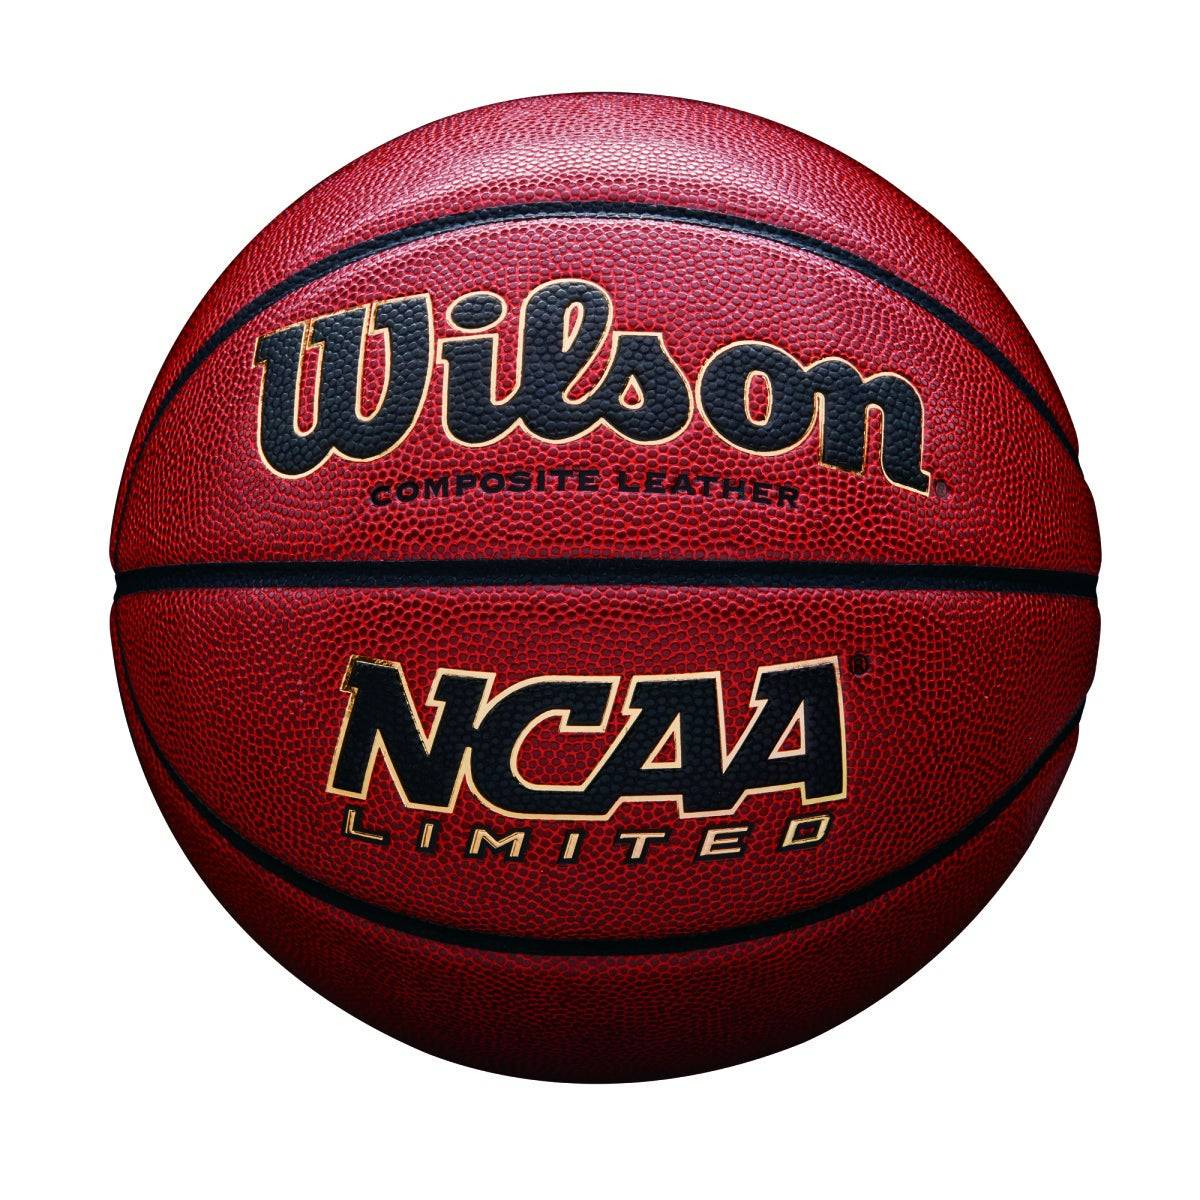 """Wilson NCAA Limited Basketball - Size: Official - 29.5""""  - Unisex - Size: Official - 29.5"""""""